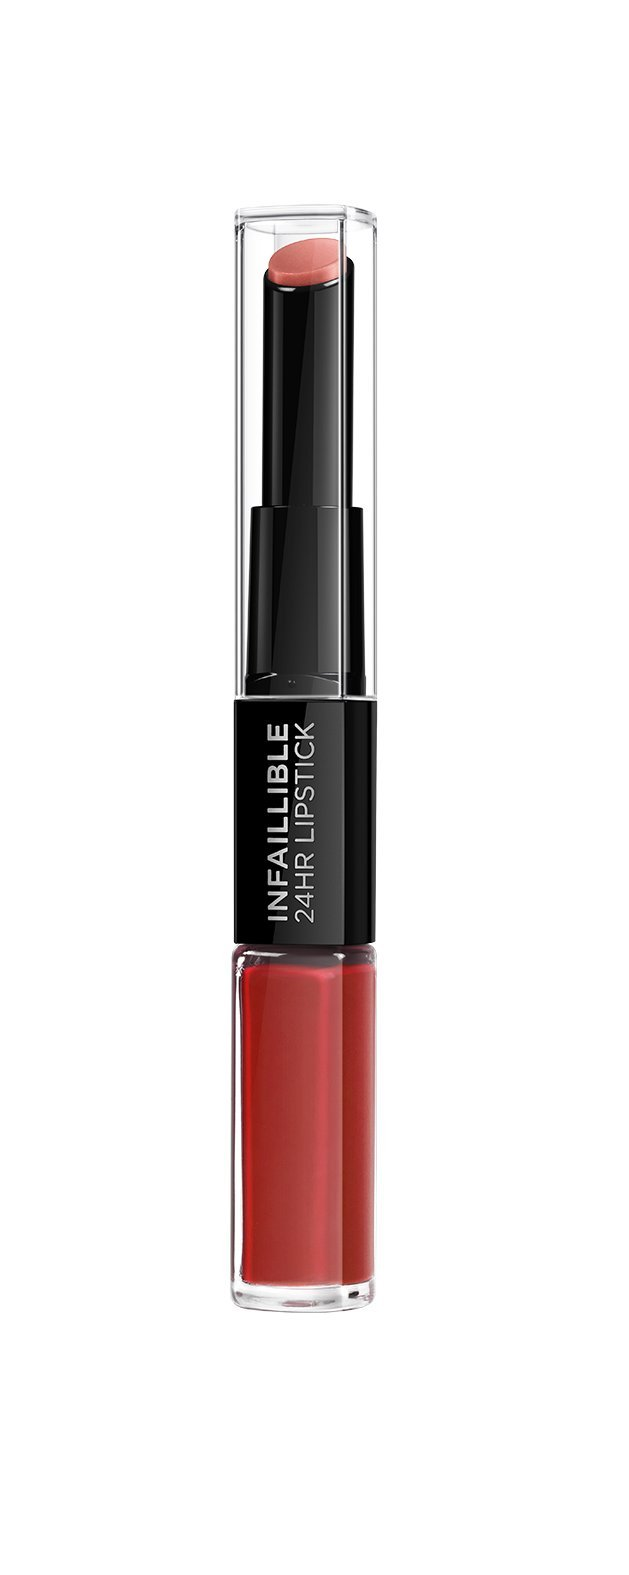 LOreal Paris Make-up Designer Pintalabios 24H Permanente, Color Rojo 506 Red